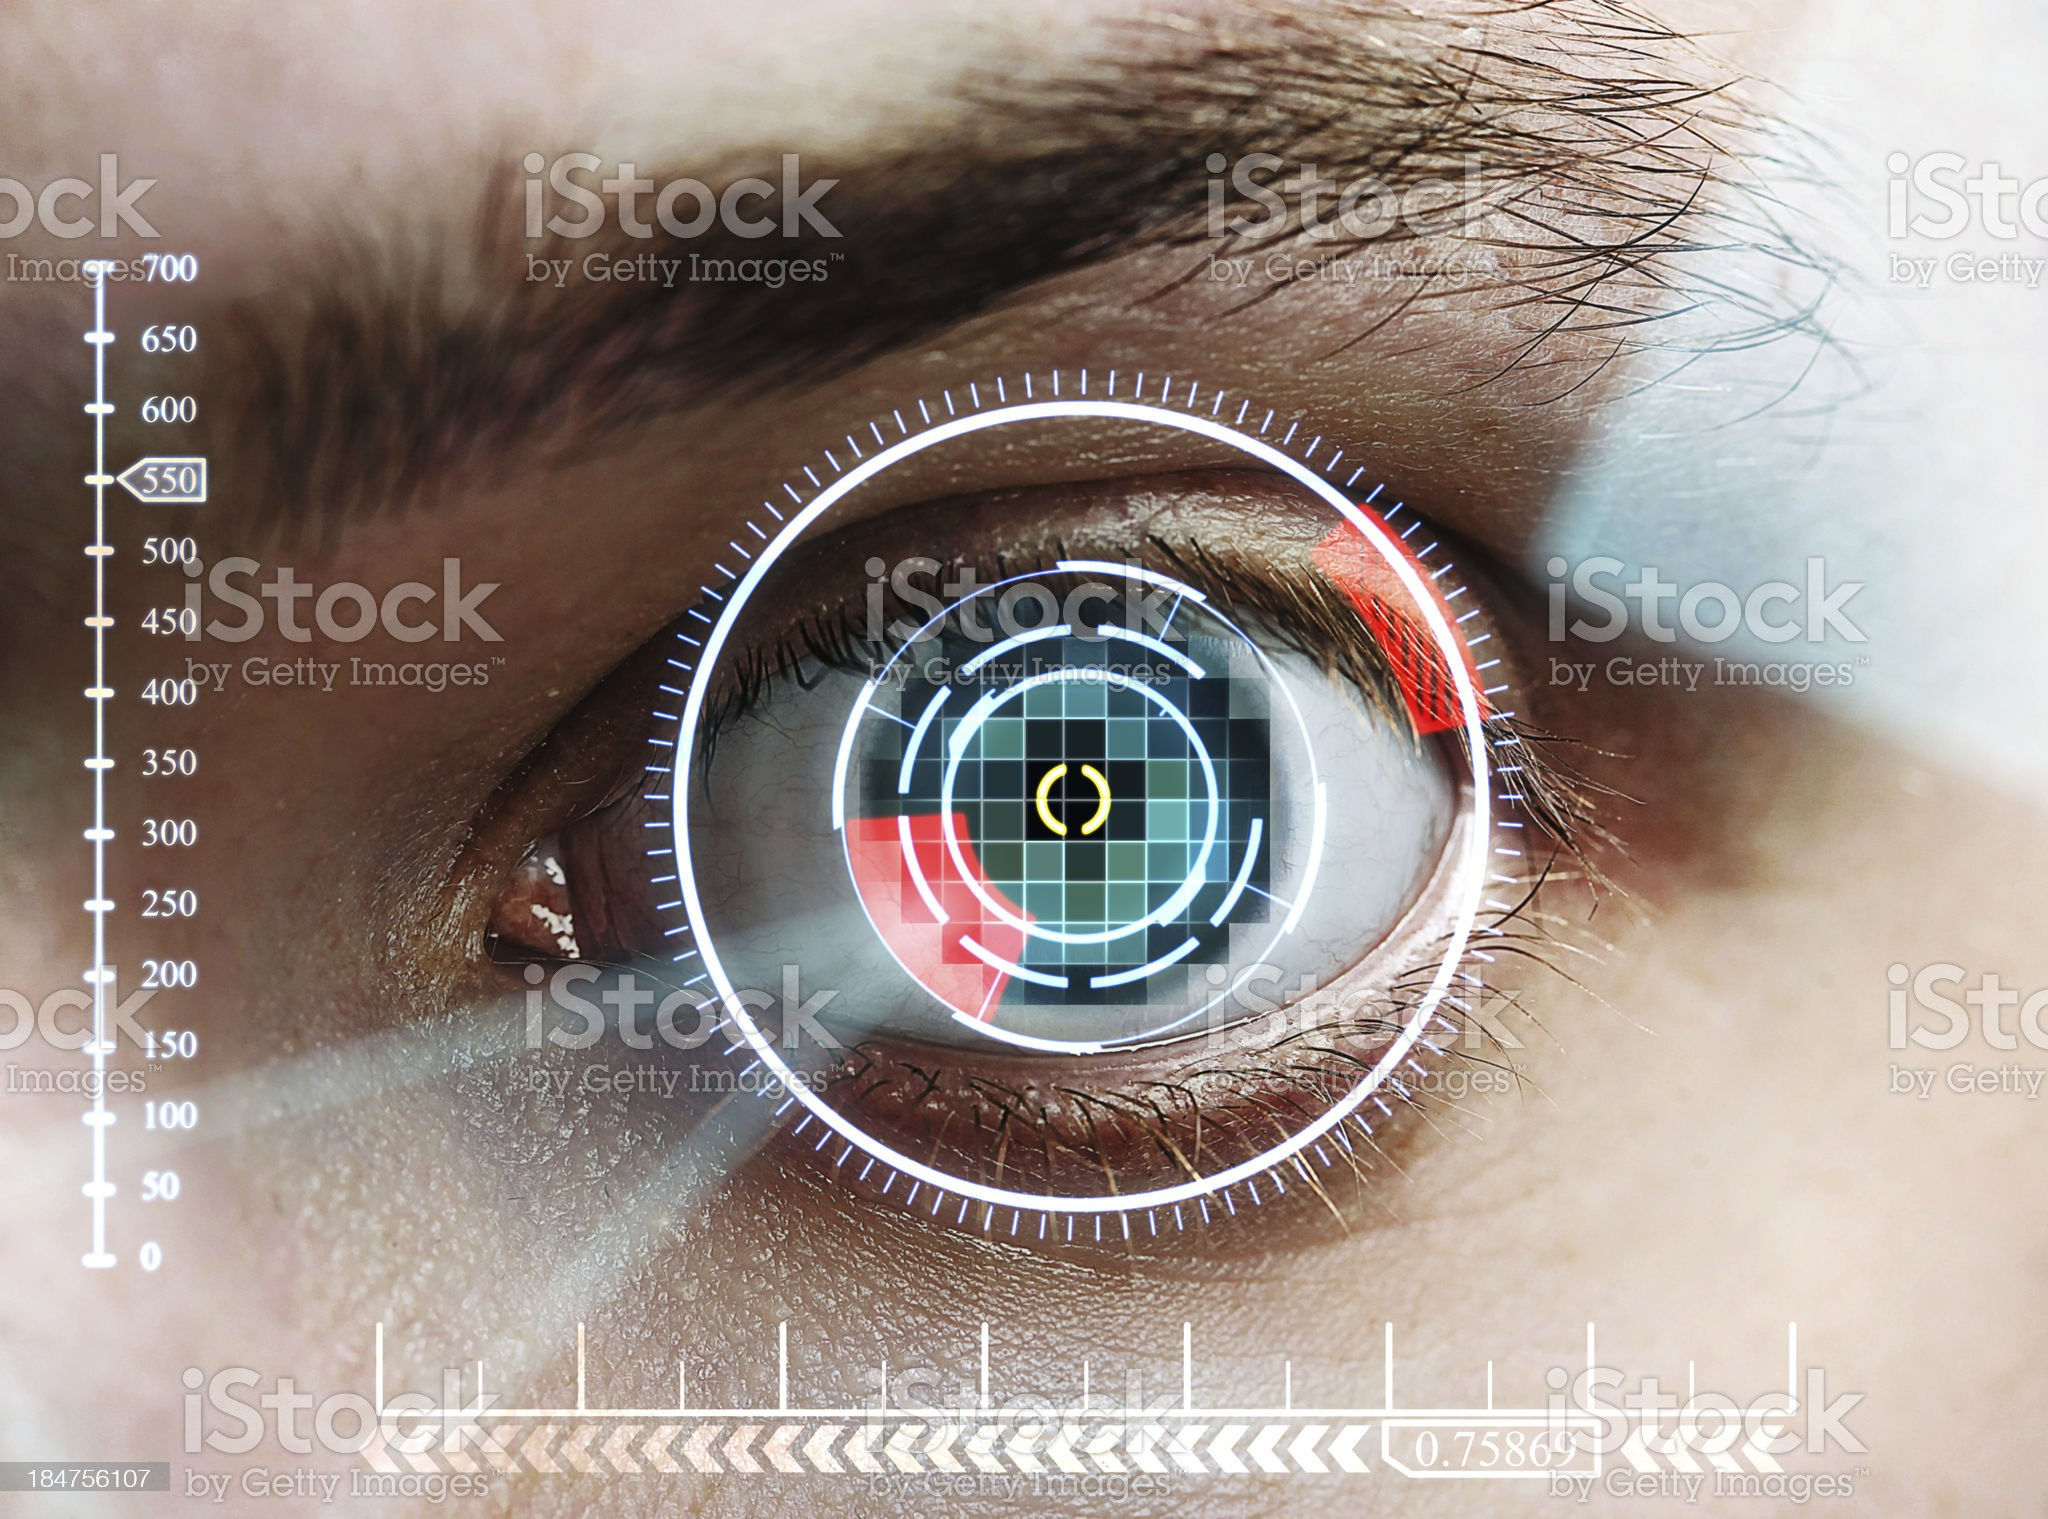 iris scan royalty-free stock photo